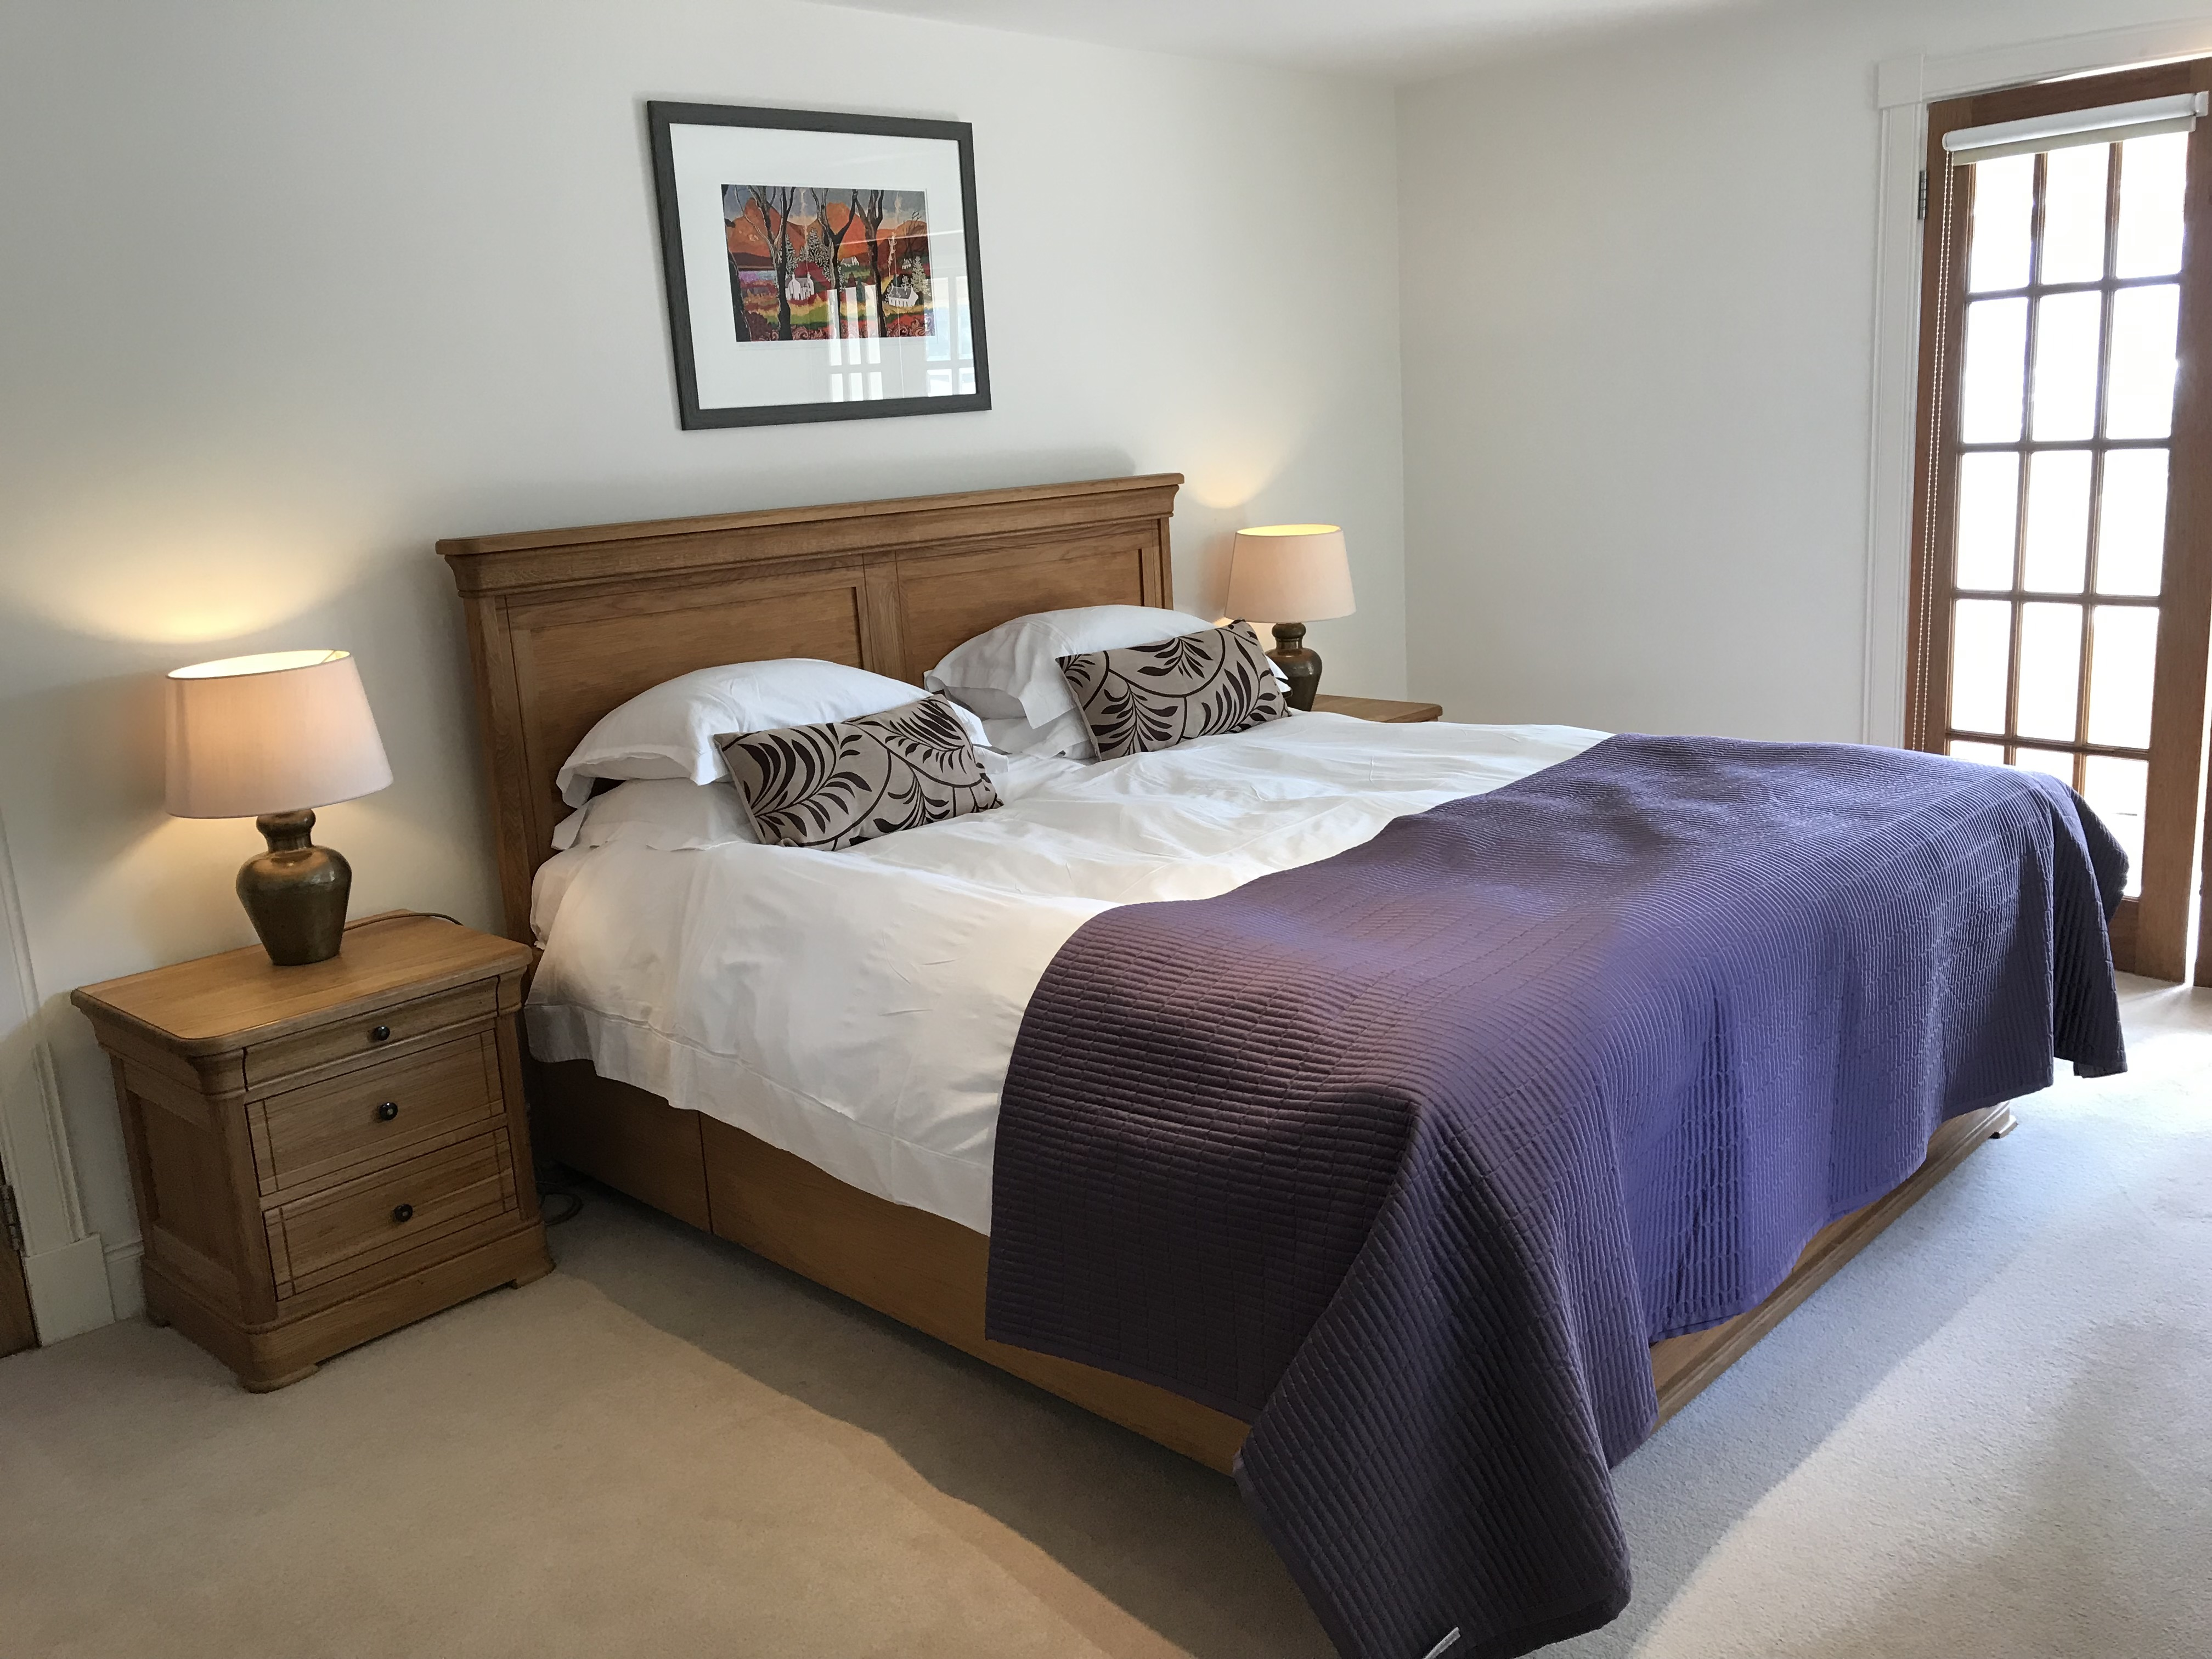 A SPACIOUS LUXURY ROOM WITH A SUPER KING SIZE BED AND EN SUITE SHOWER ROOM, A SEPARATE SITTING AREA OVER LOOKING THE SHORE. THIS ROOM IS ON THE GROUND FLOOR.